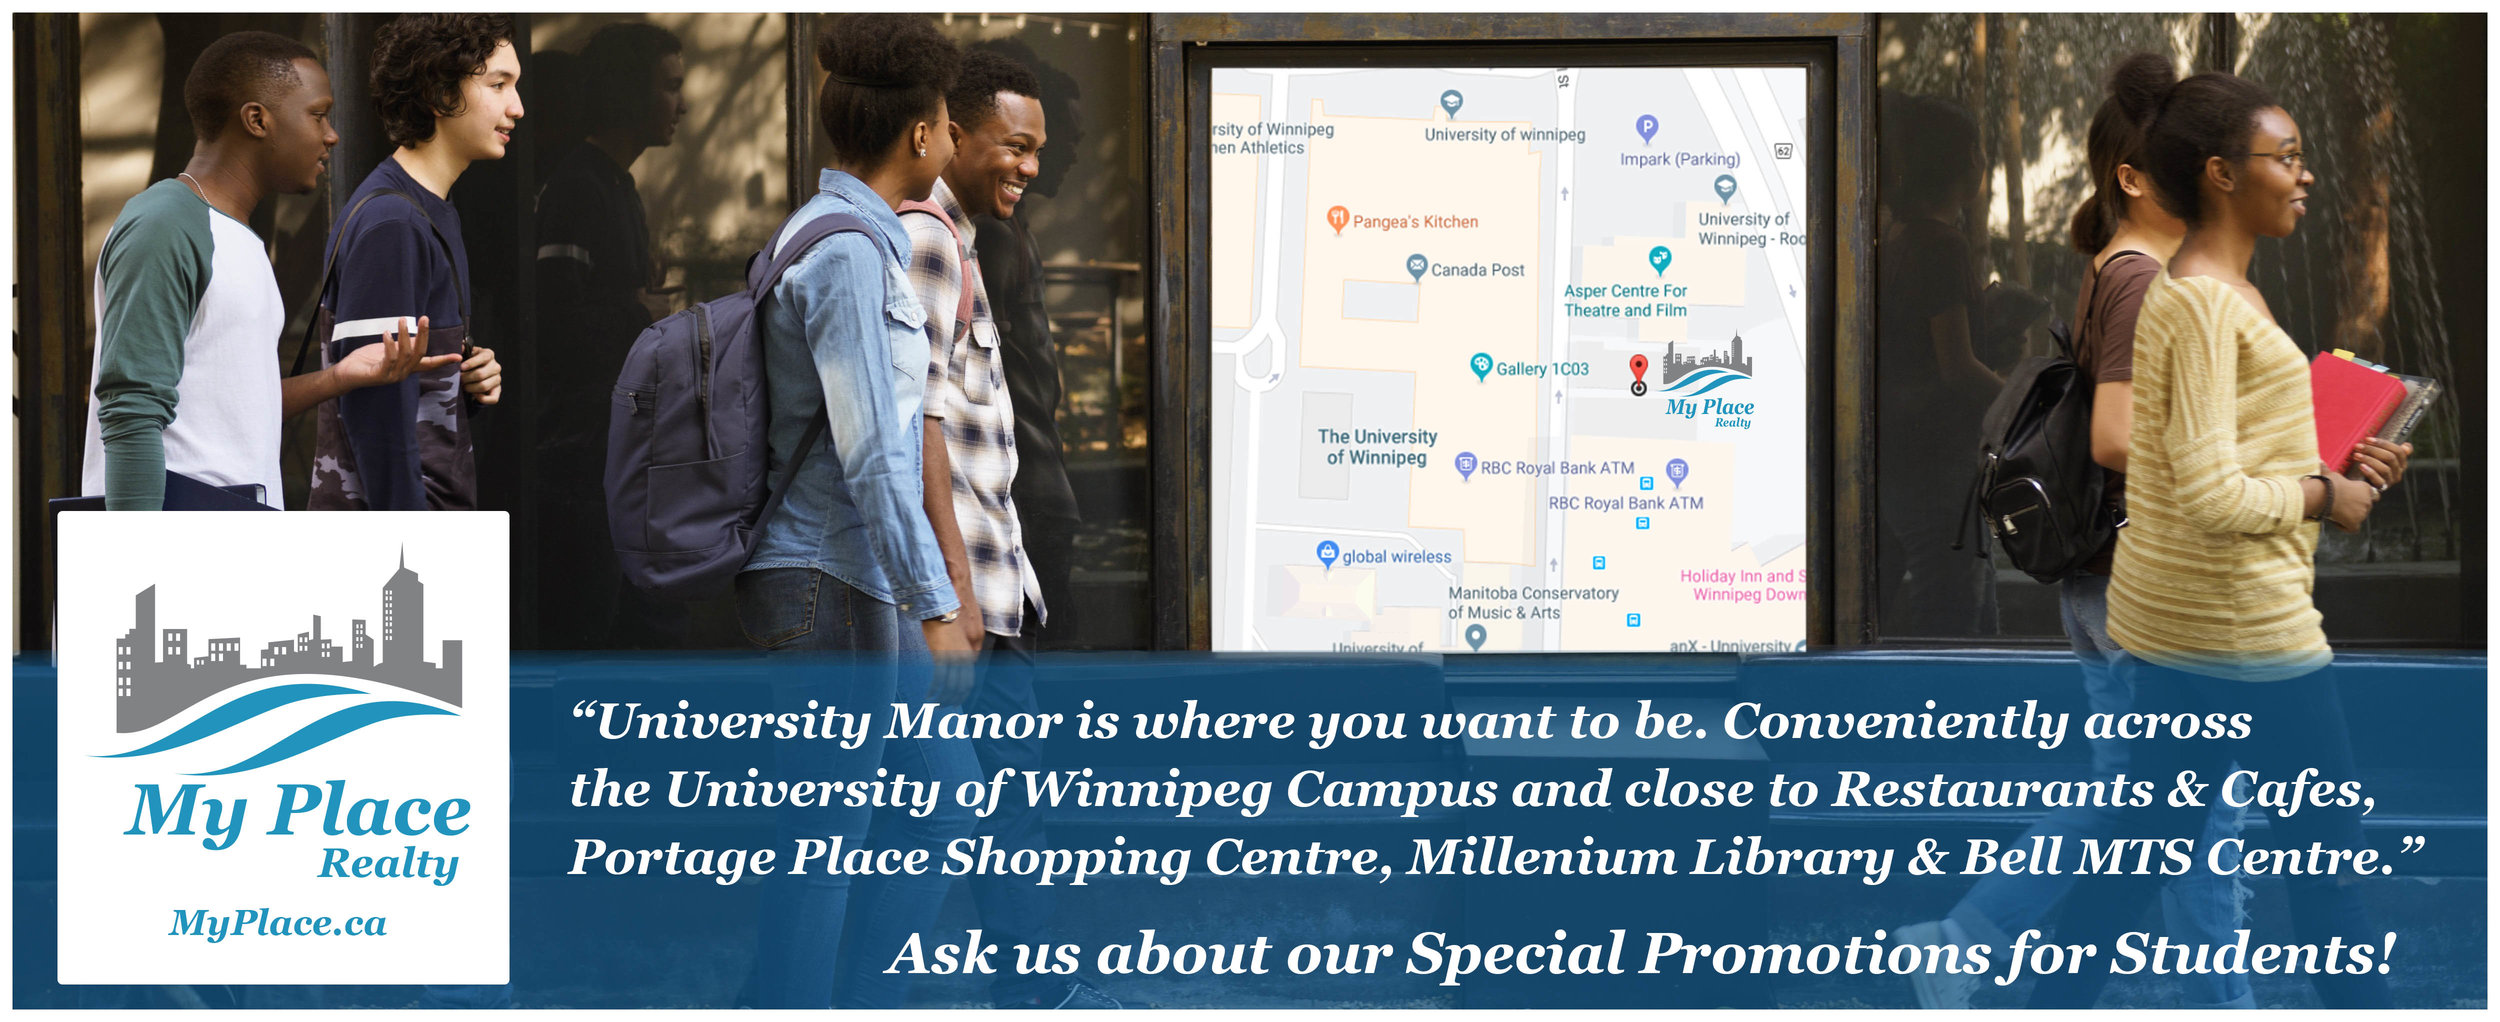 University Manor - Where you want to be.jpg